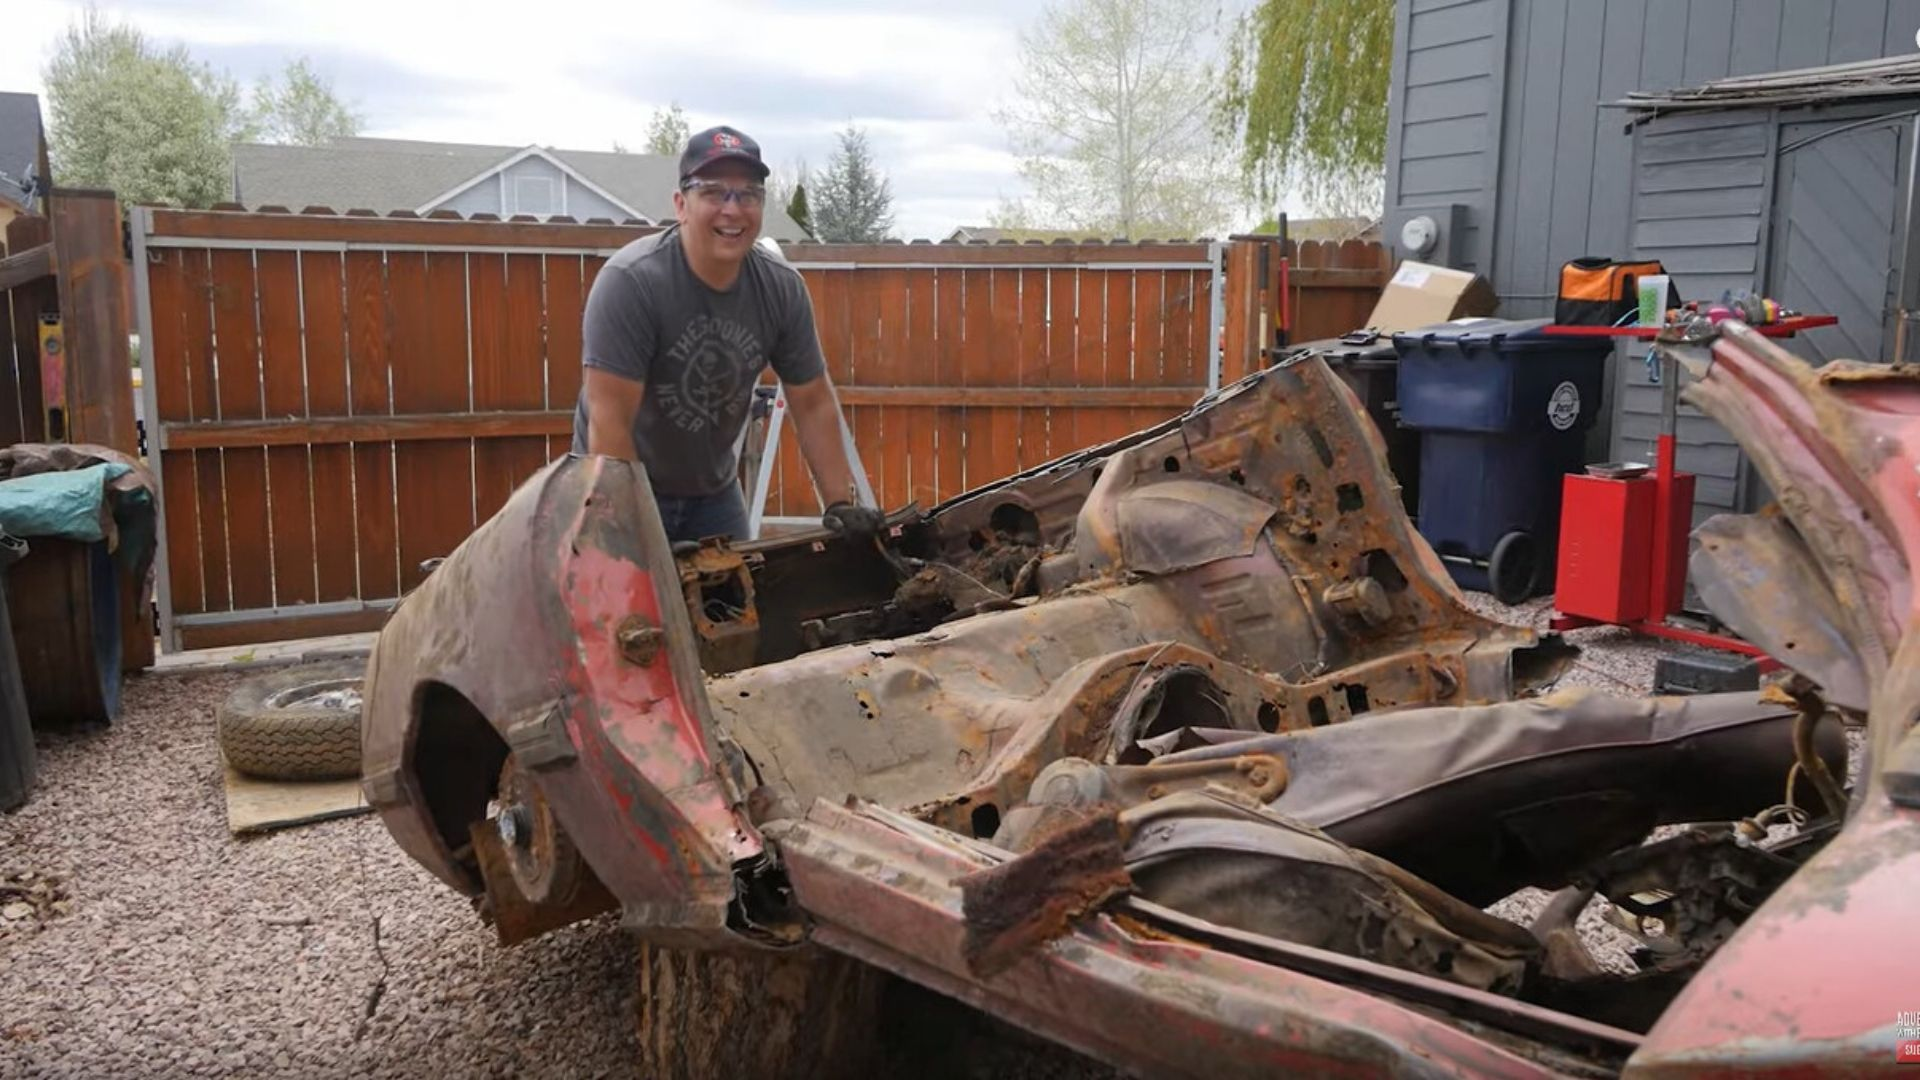 Watch The Mazda RX-7 Recovered From River Get Chopped Up